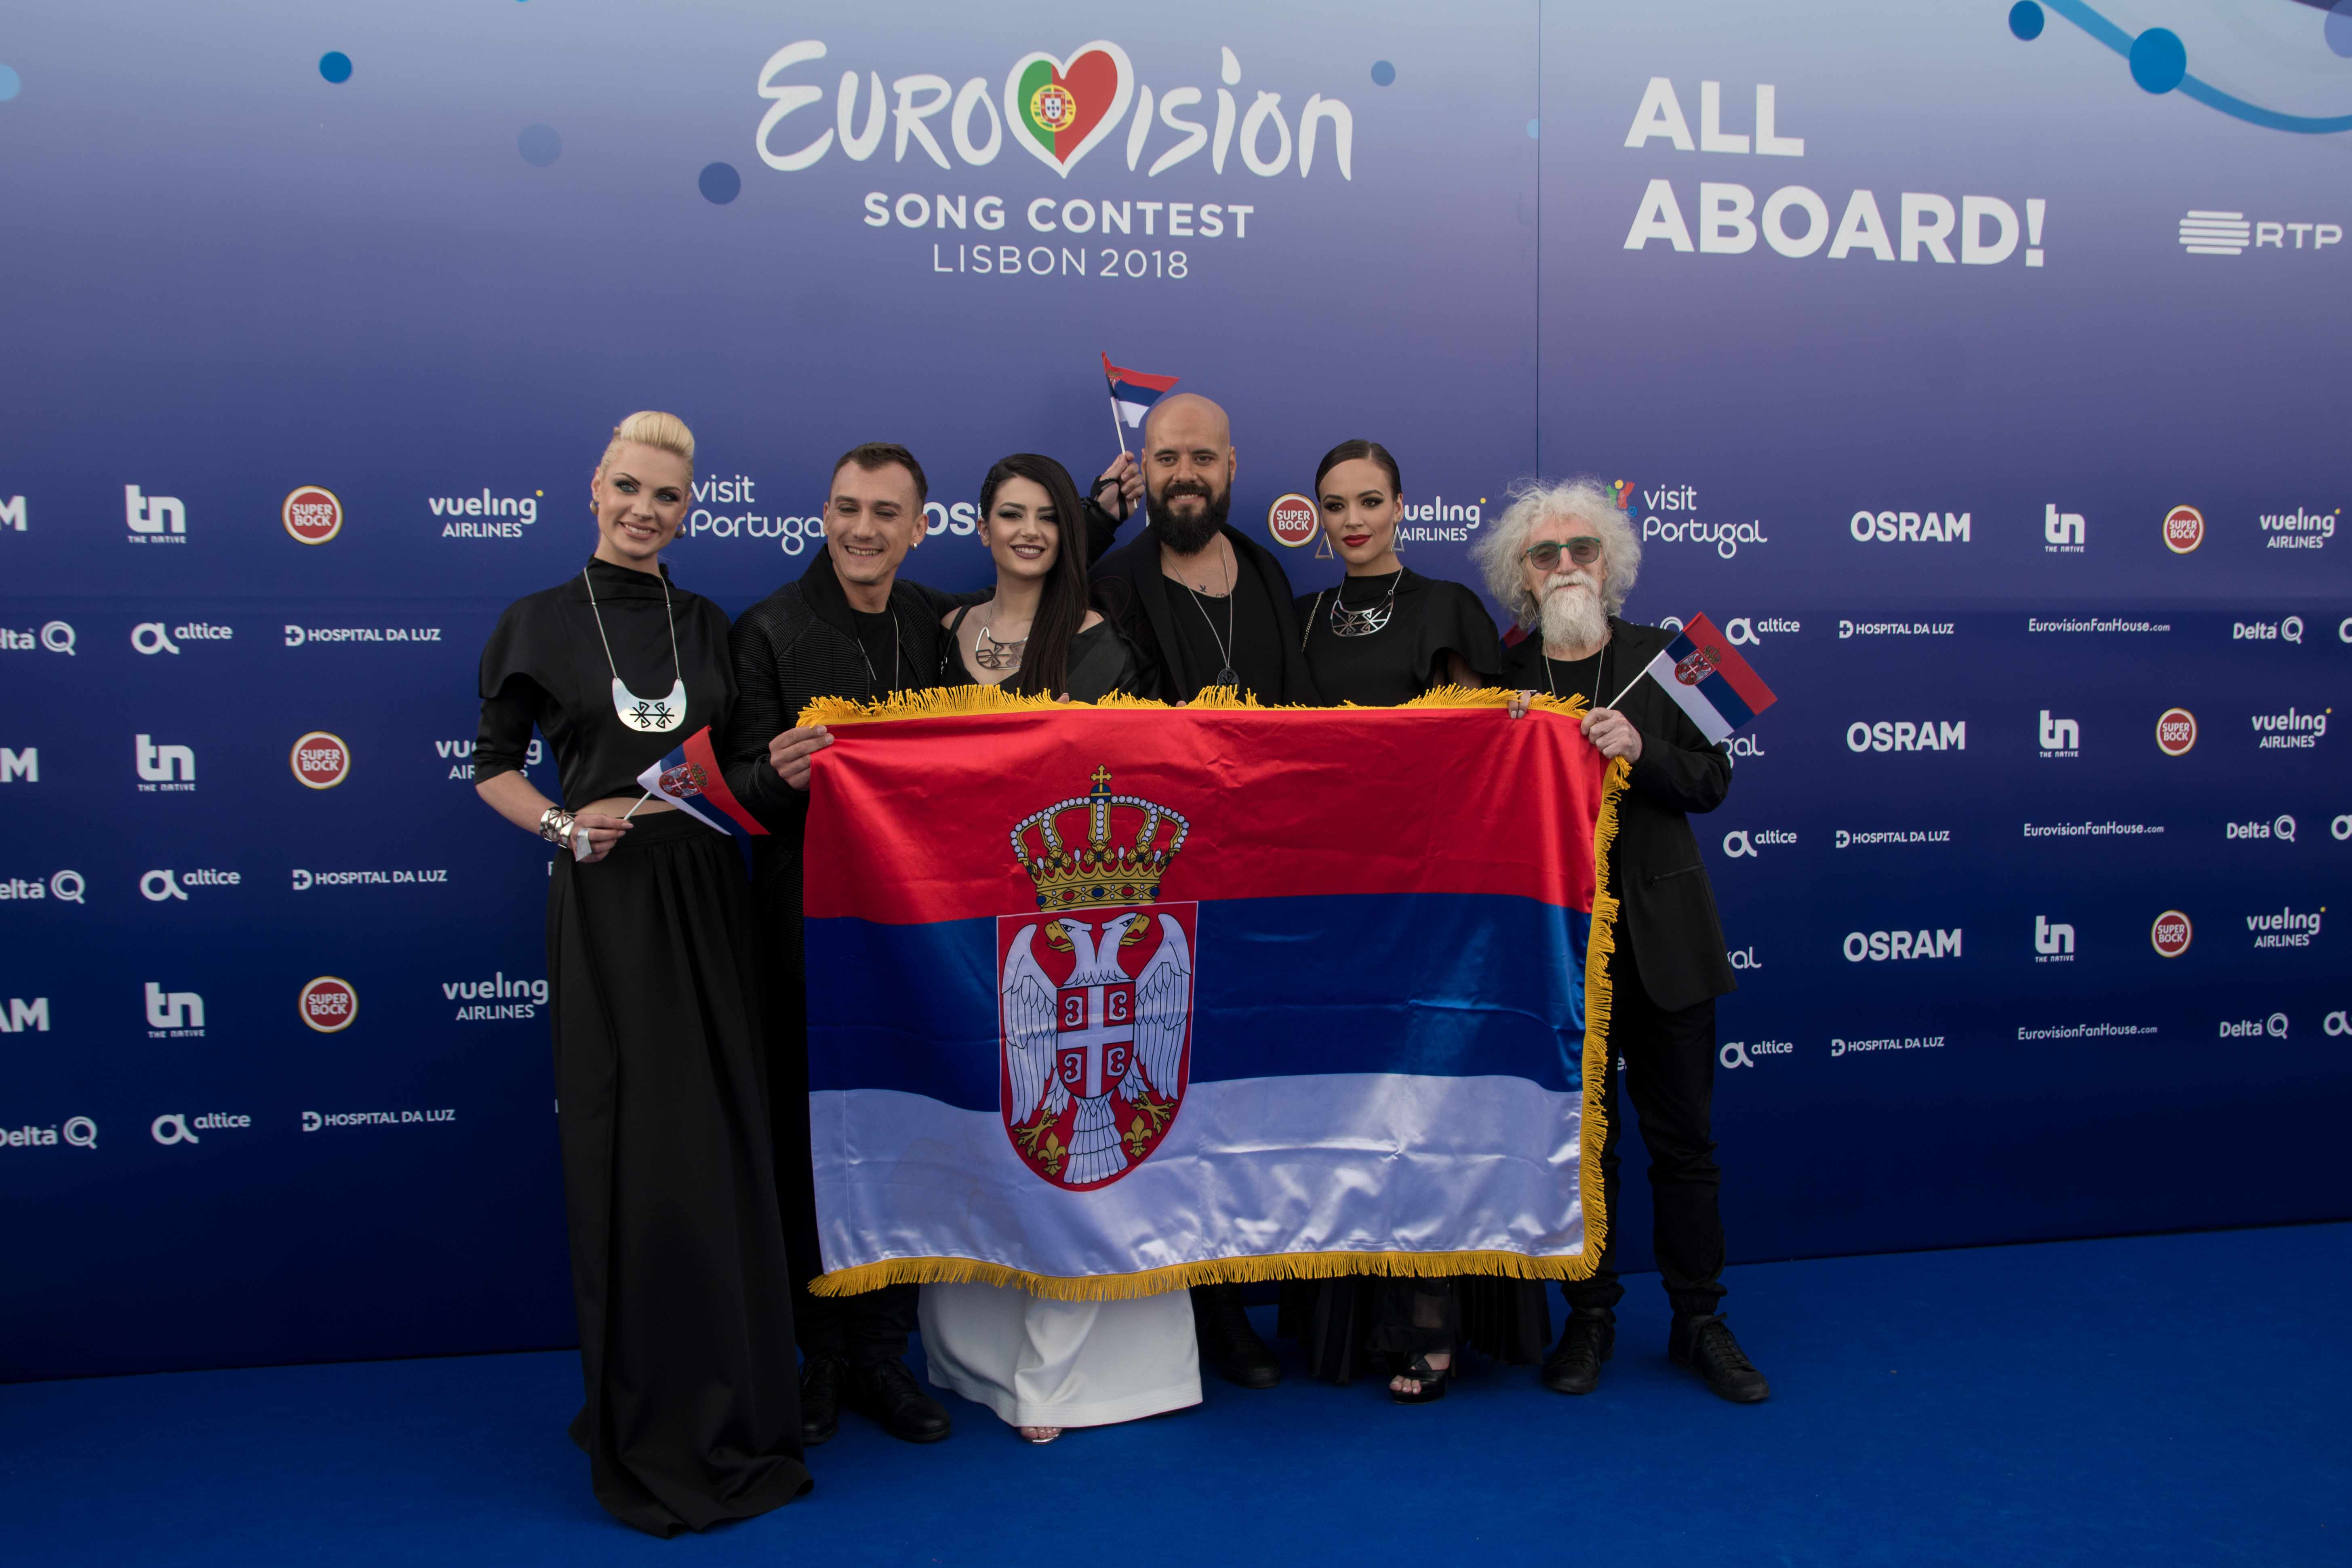 LISBON, PORTUGAL - MAY 06:  Sanja Ilic & Balkanika of Serbia attend the red carpet before the Eurovision private party on May 6, 2018 in Lisbon, Portugal.  (Photo by Pedro Gomes/Getty Images)